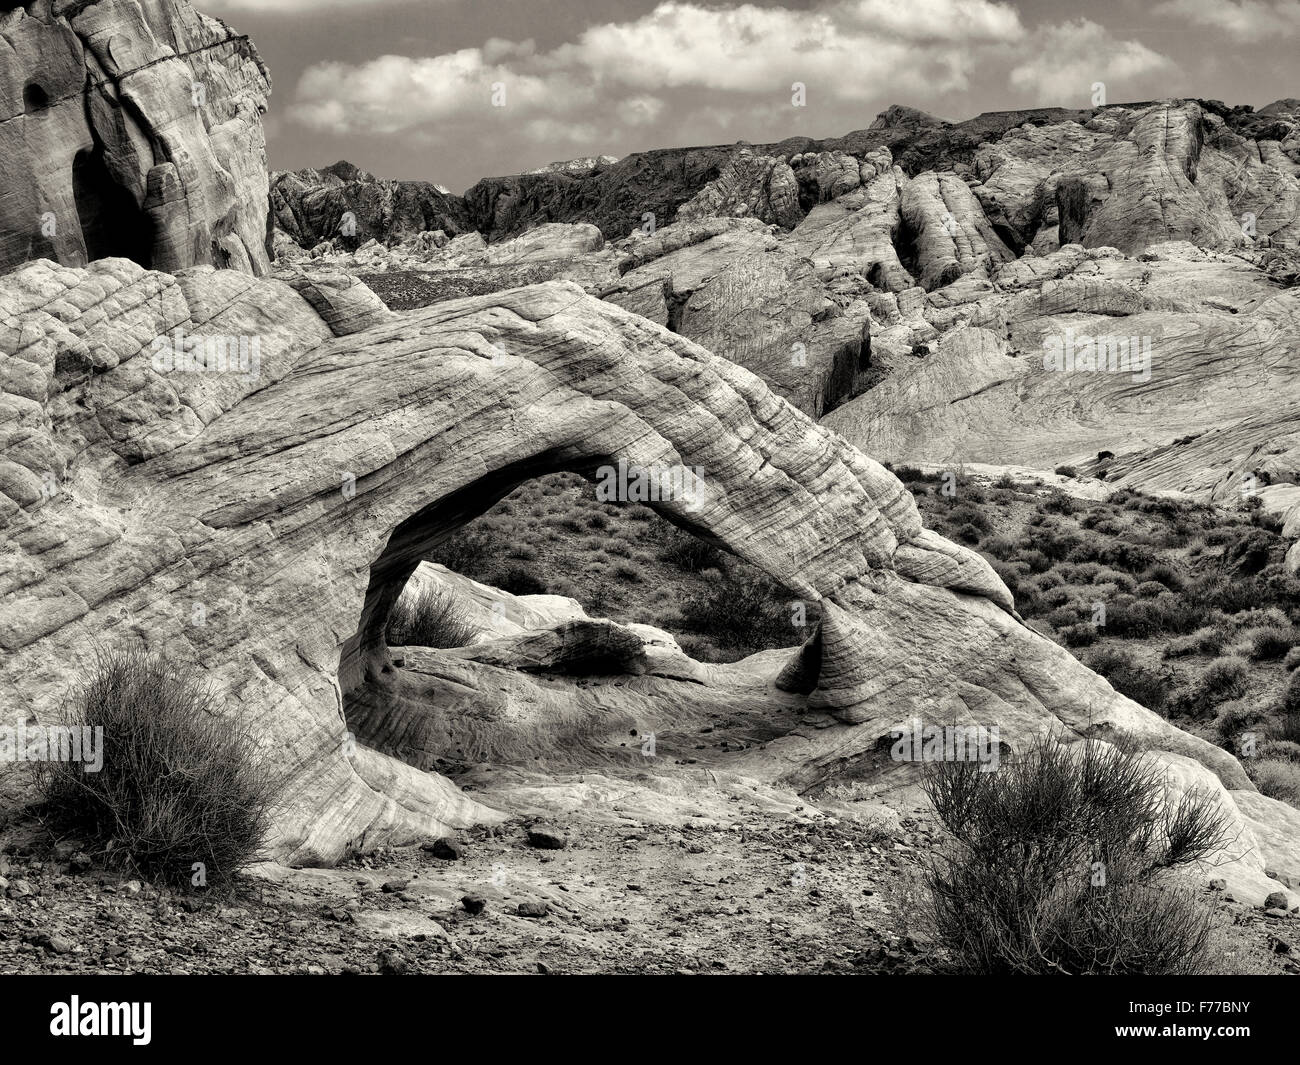 White Arch. Valley of Fire State Park, Nevada - Stock Image